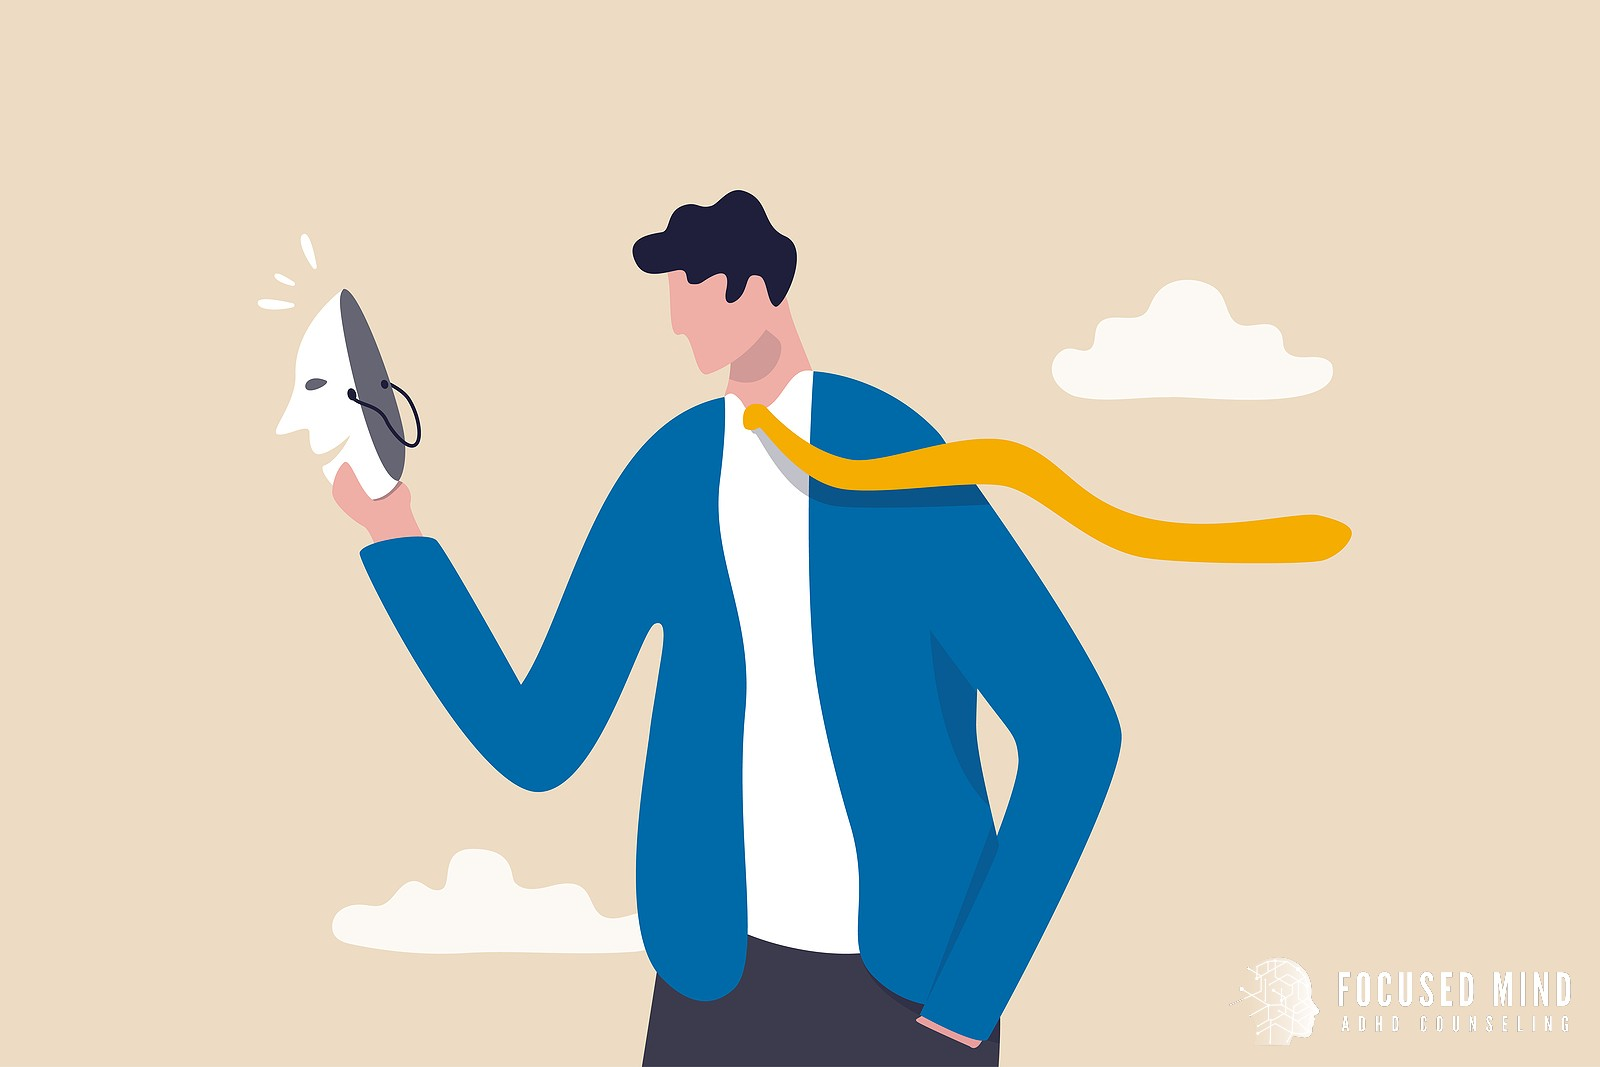 A graphic of a person holding a mask in hand. This could symbolize overcoming ADHD imposter syndrome with the help of an ADHD specialist. Contact Focused Mind ADHD Counseling in Columbus, OH